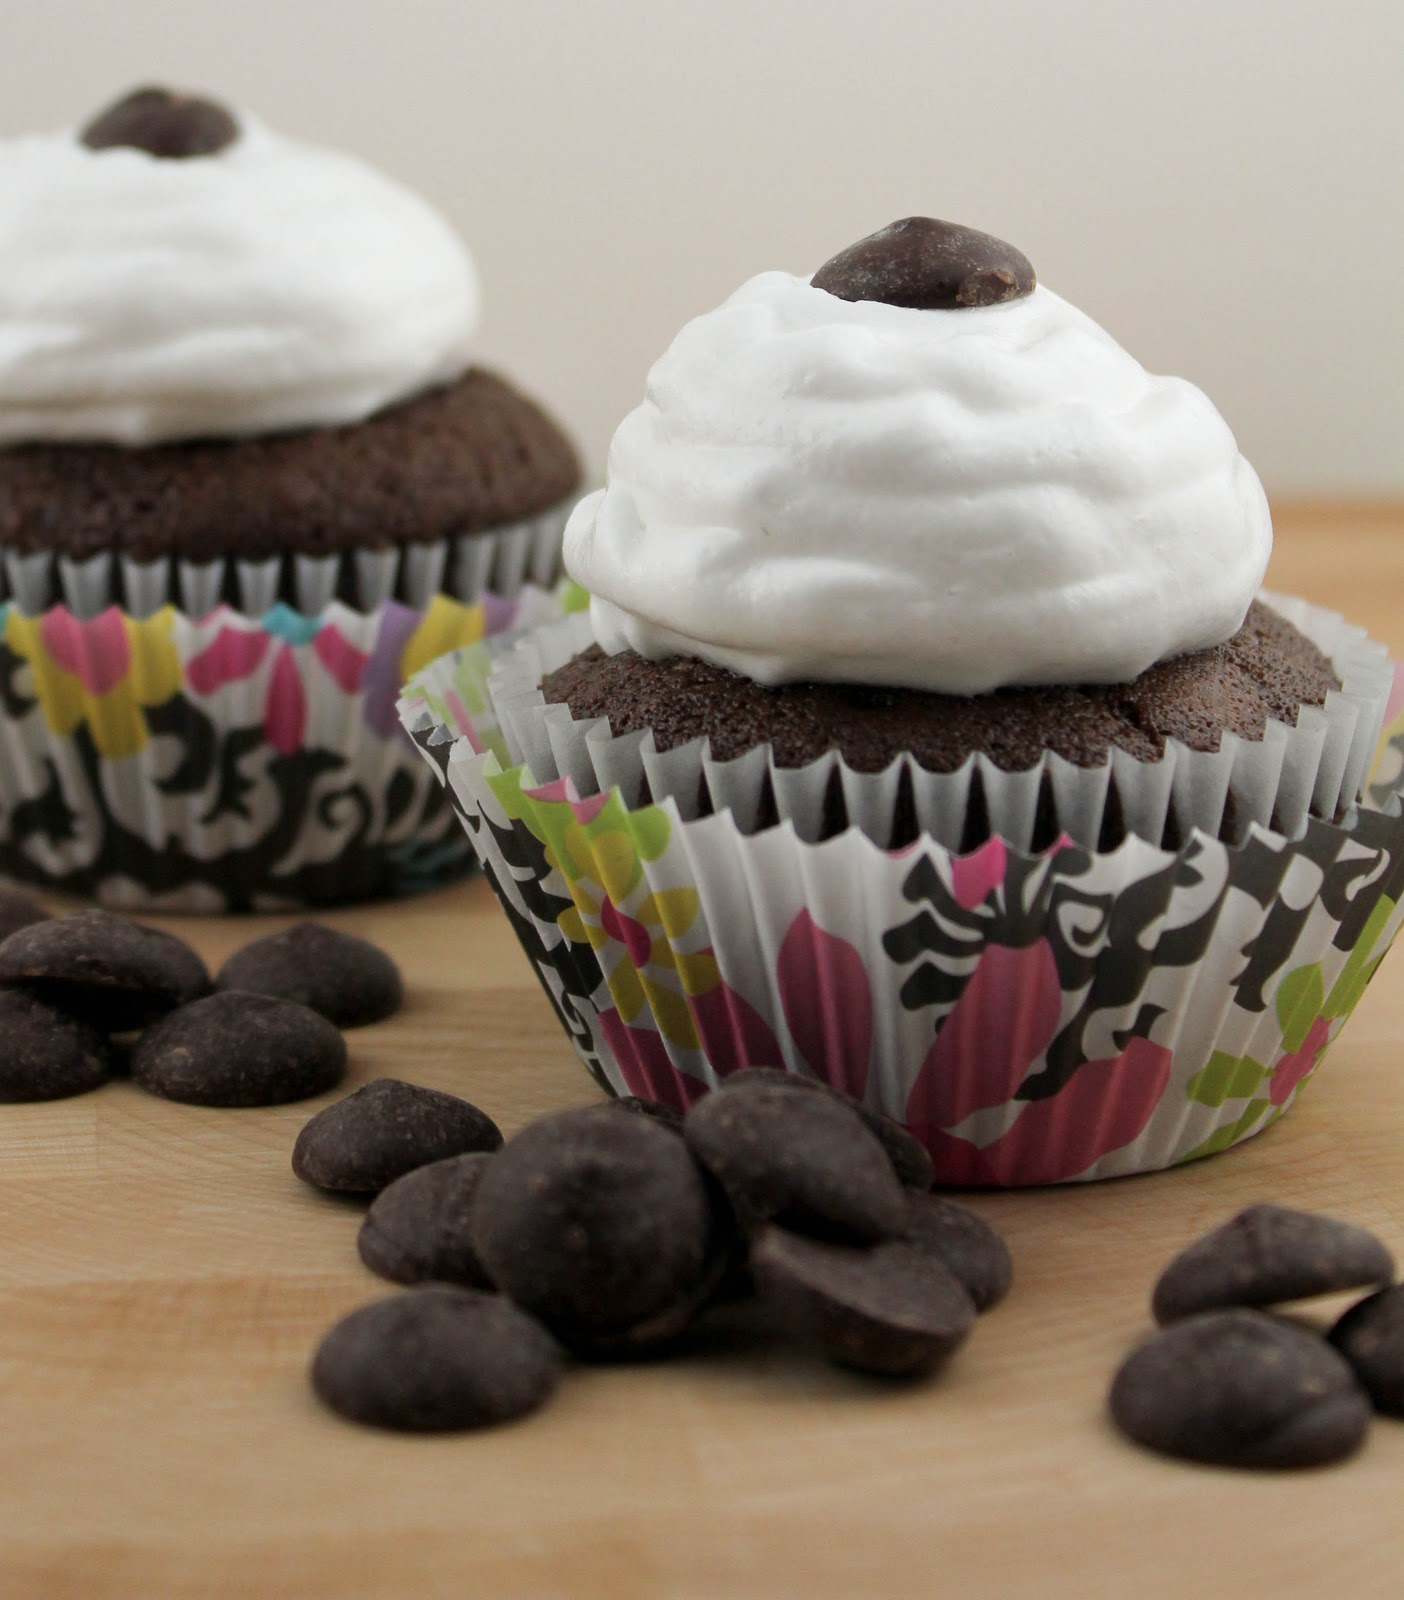 Chocolate Ganache-Filled Cupcakes~ - That Skinny Chick Can Bake